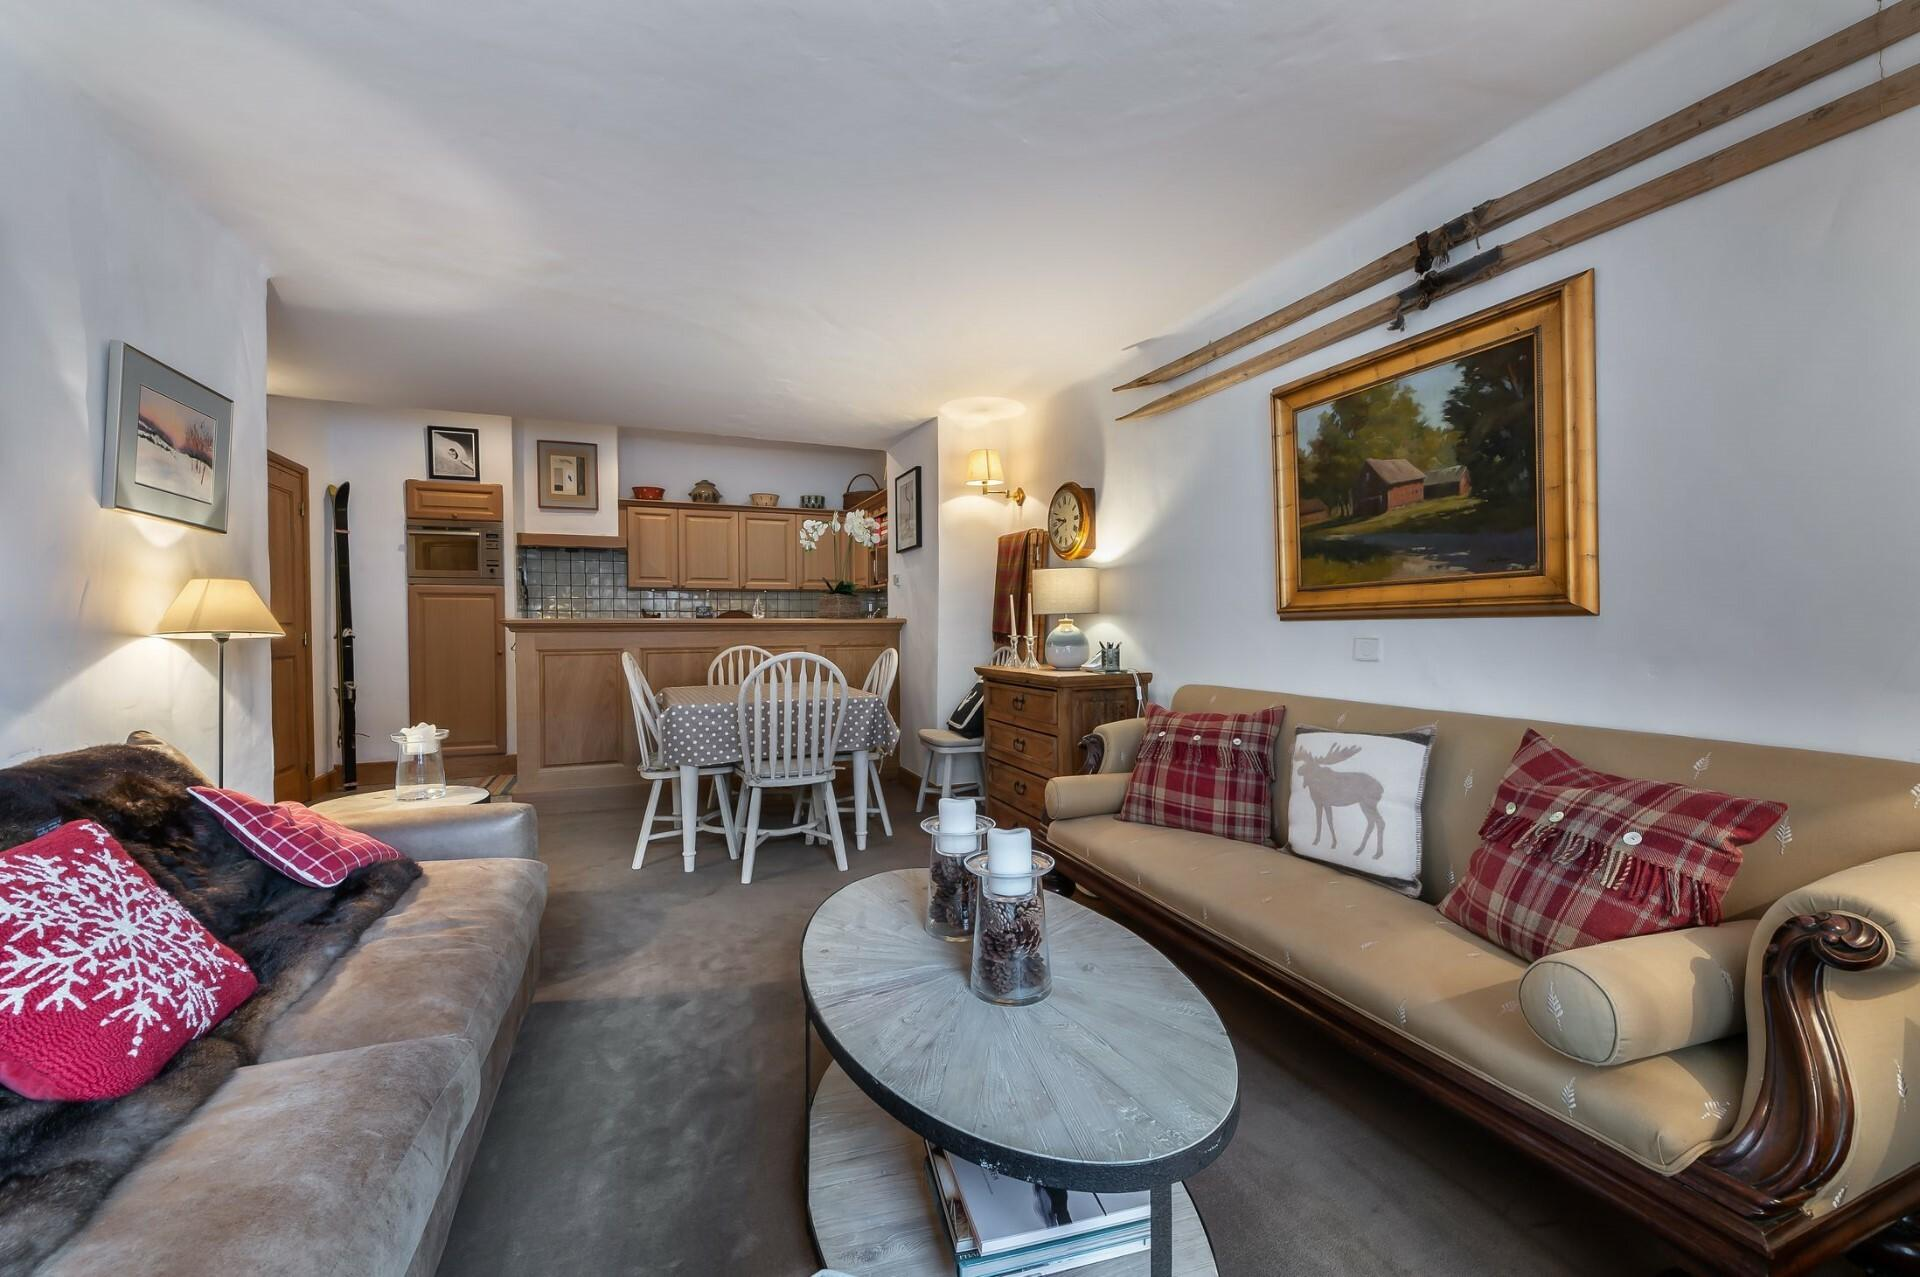 SUPERB APARTMENT IN THE HEART OF THE OLD VILLAGE